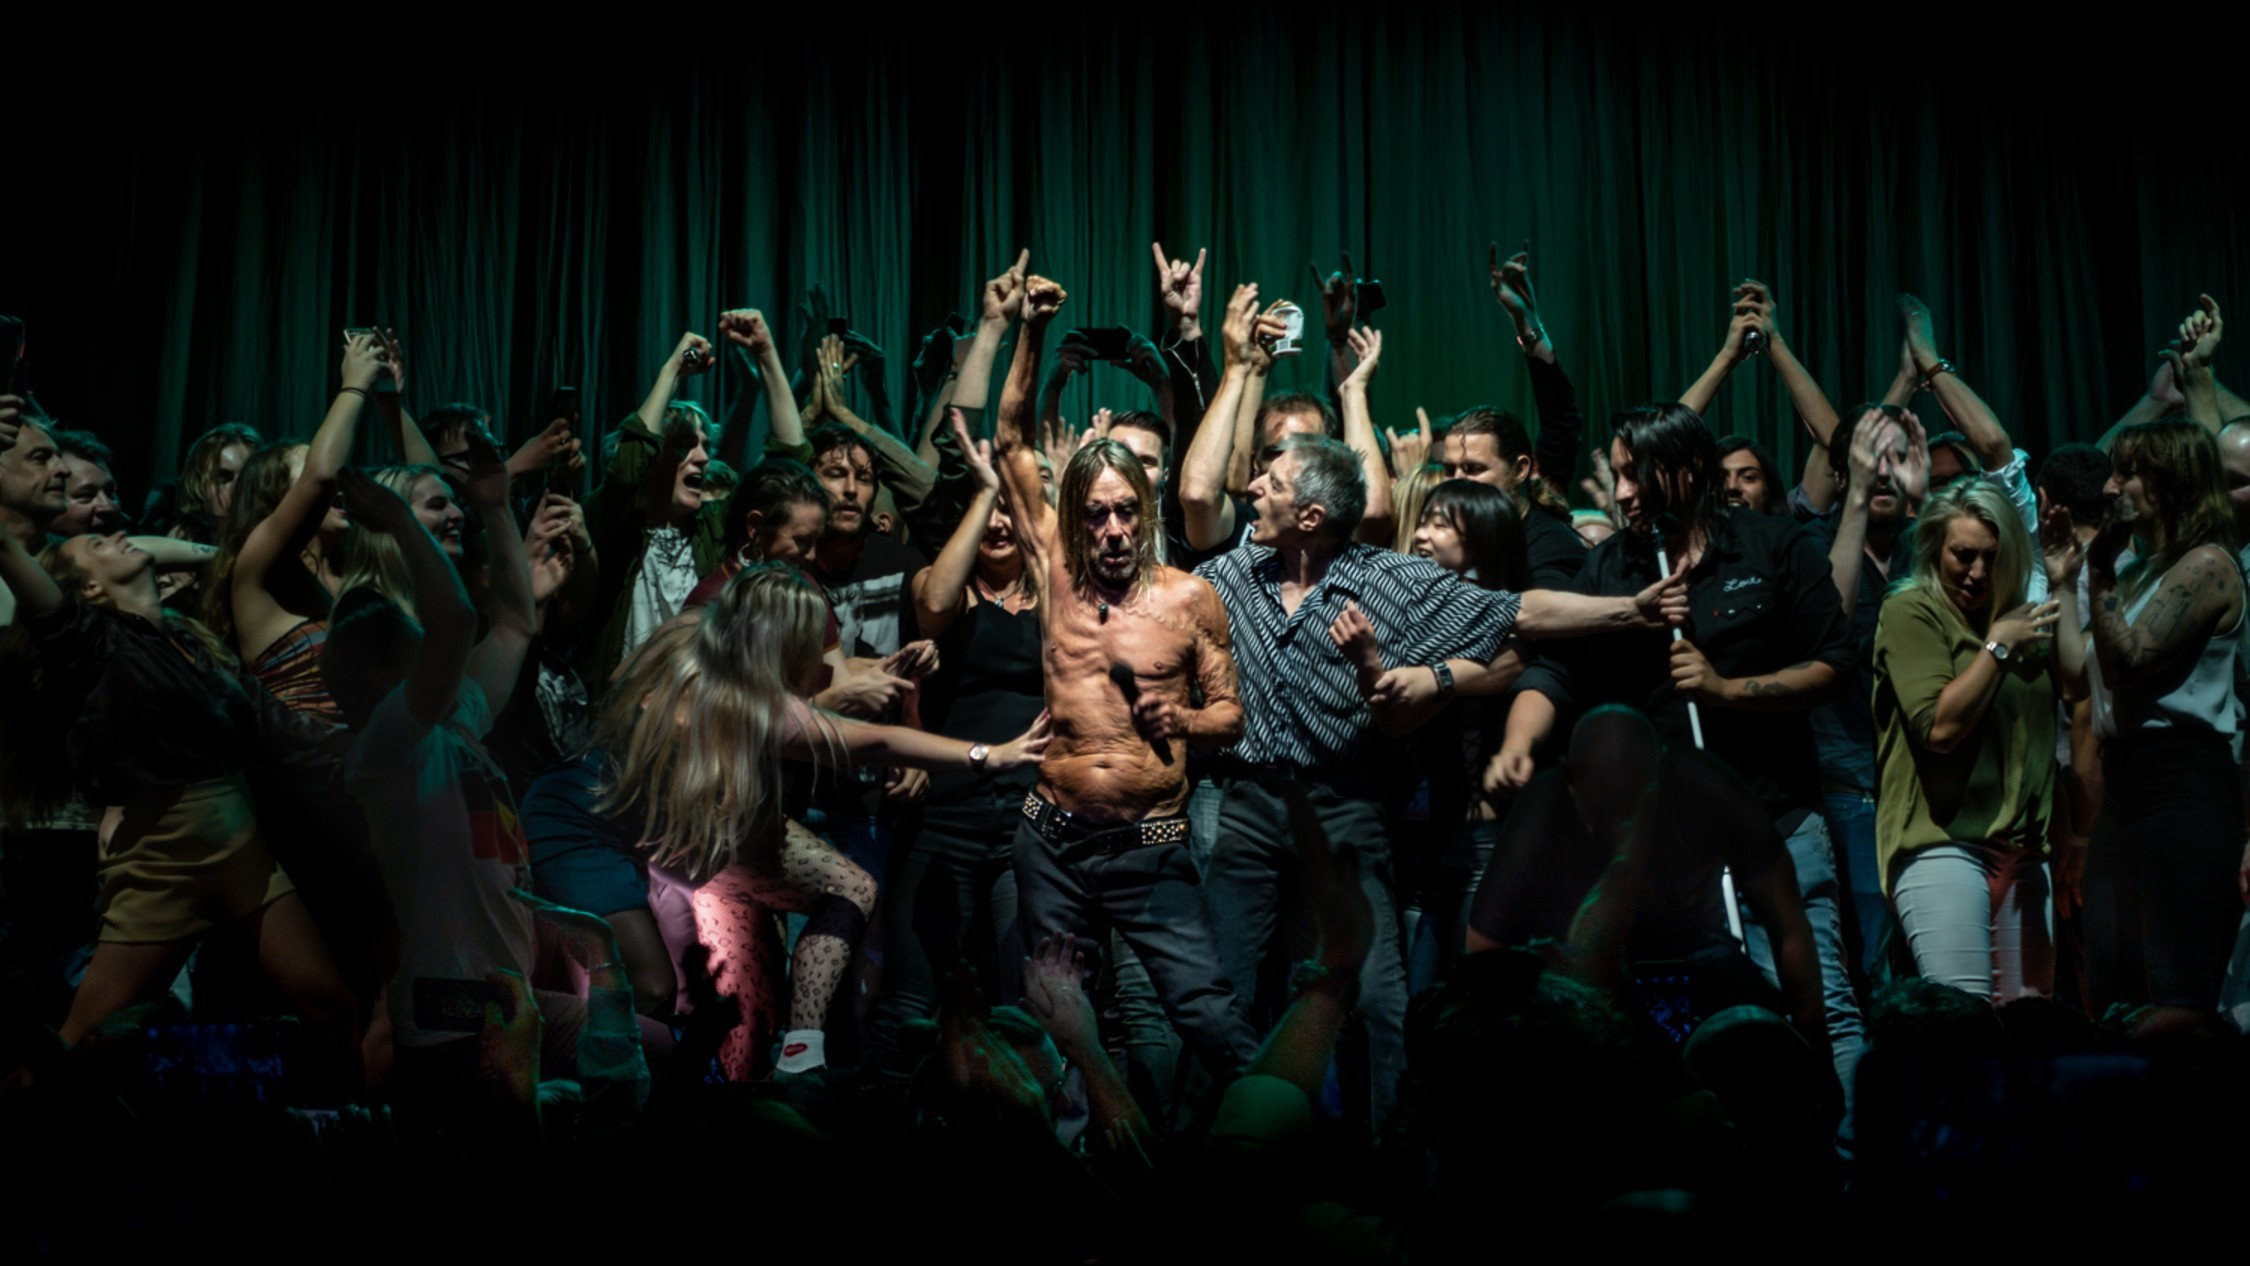 Iggy Pop parties in a wild party scene shot like an old religious oil painting by photographer Antoine Veling